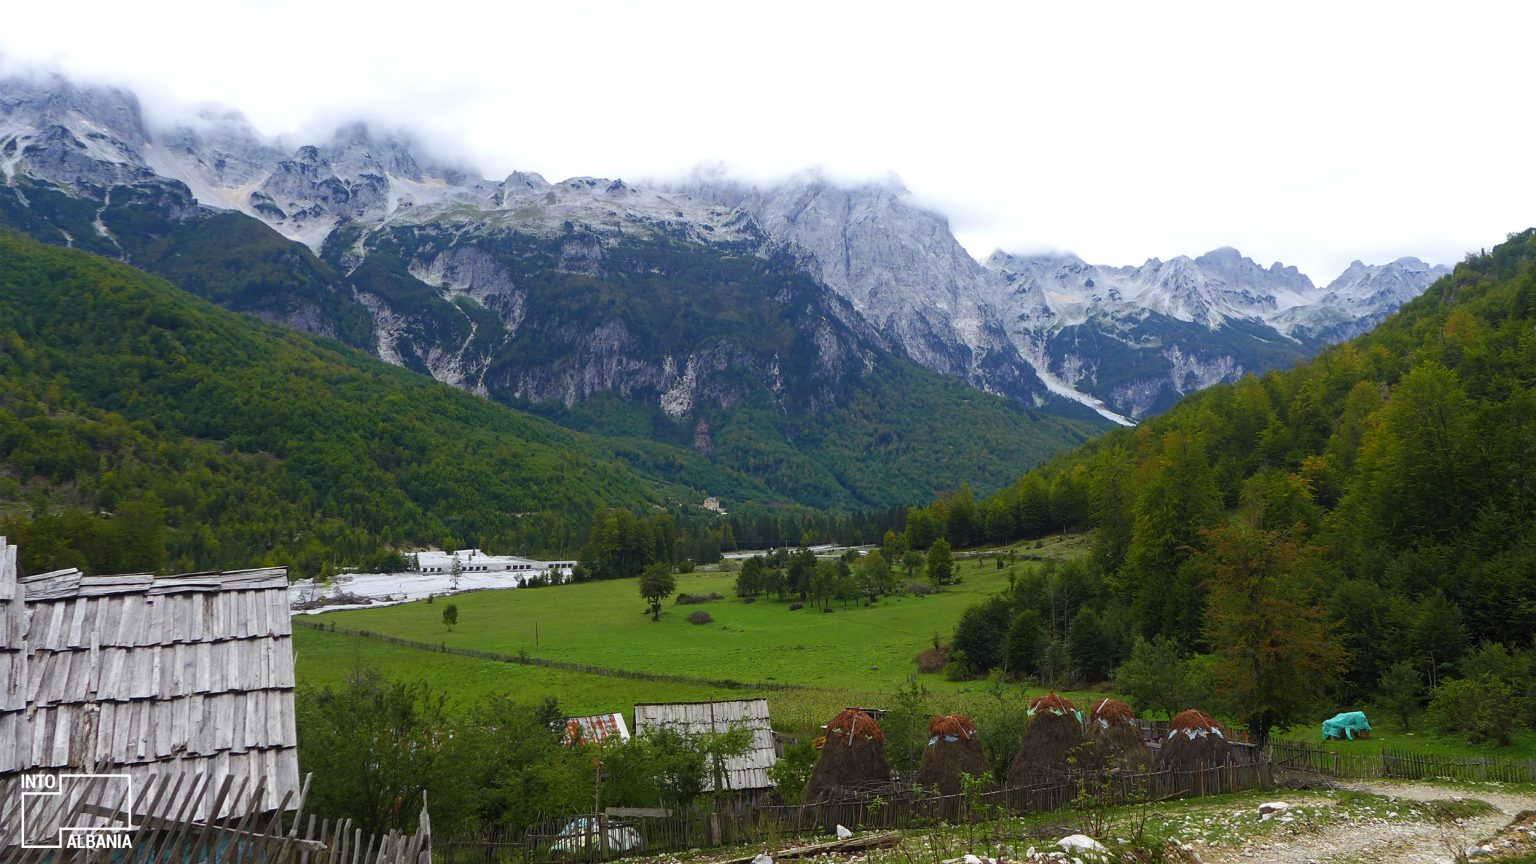 Valbona Valley, Kukës, photo by IntoAlbania.